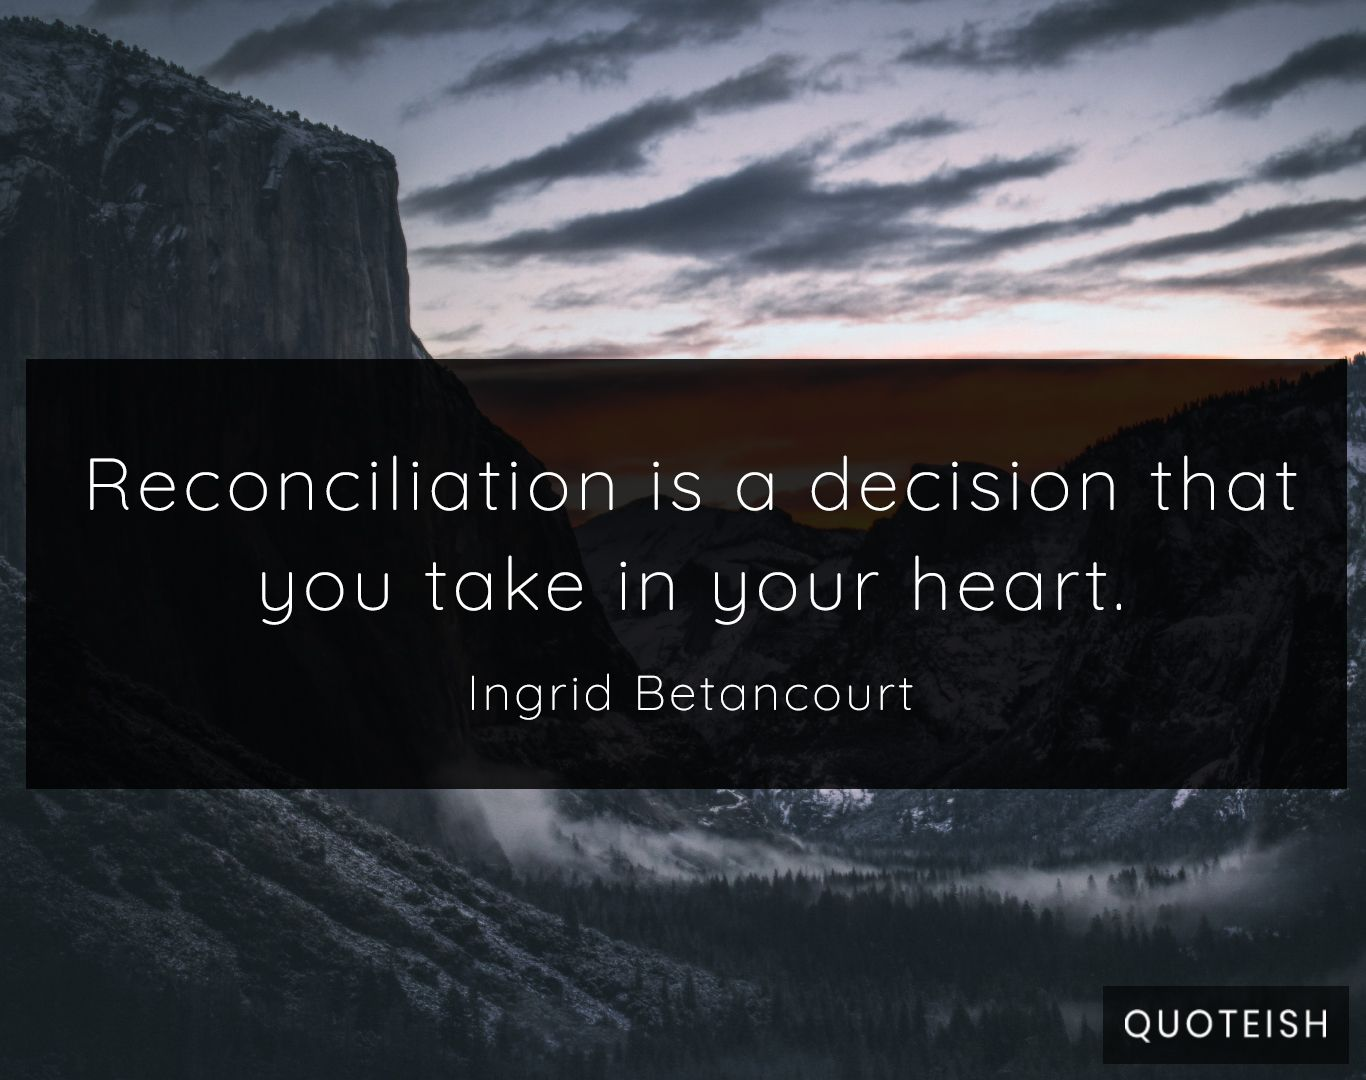 33 Reconciliation Quotes - QUOTEISH